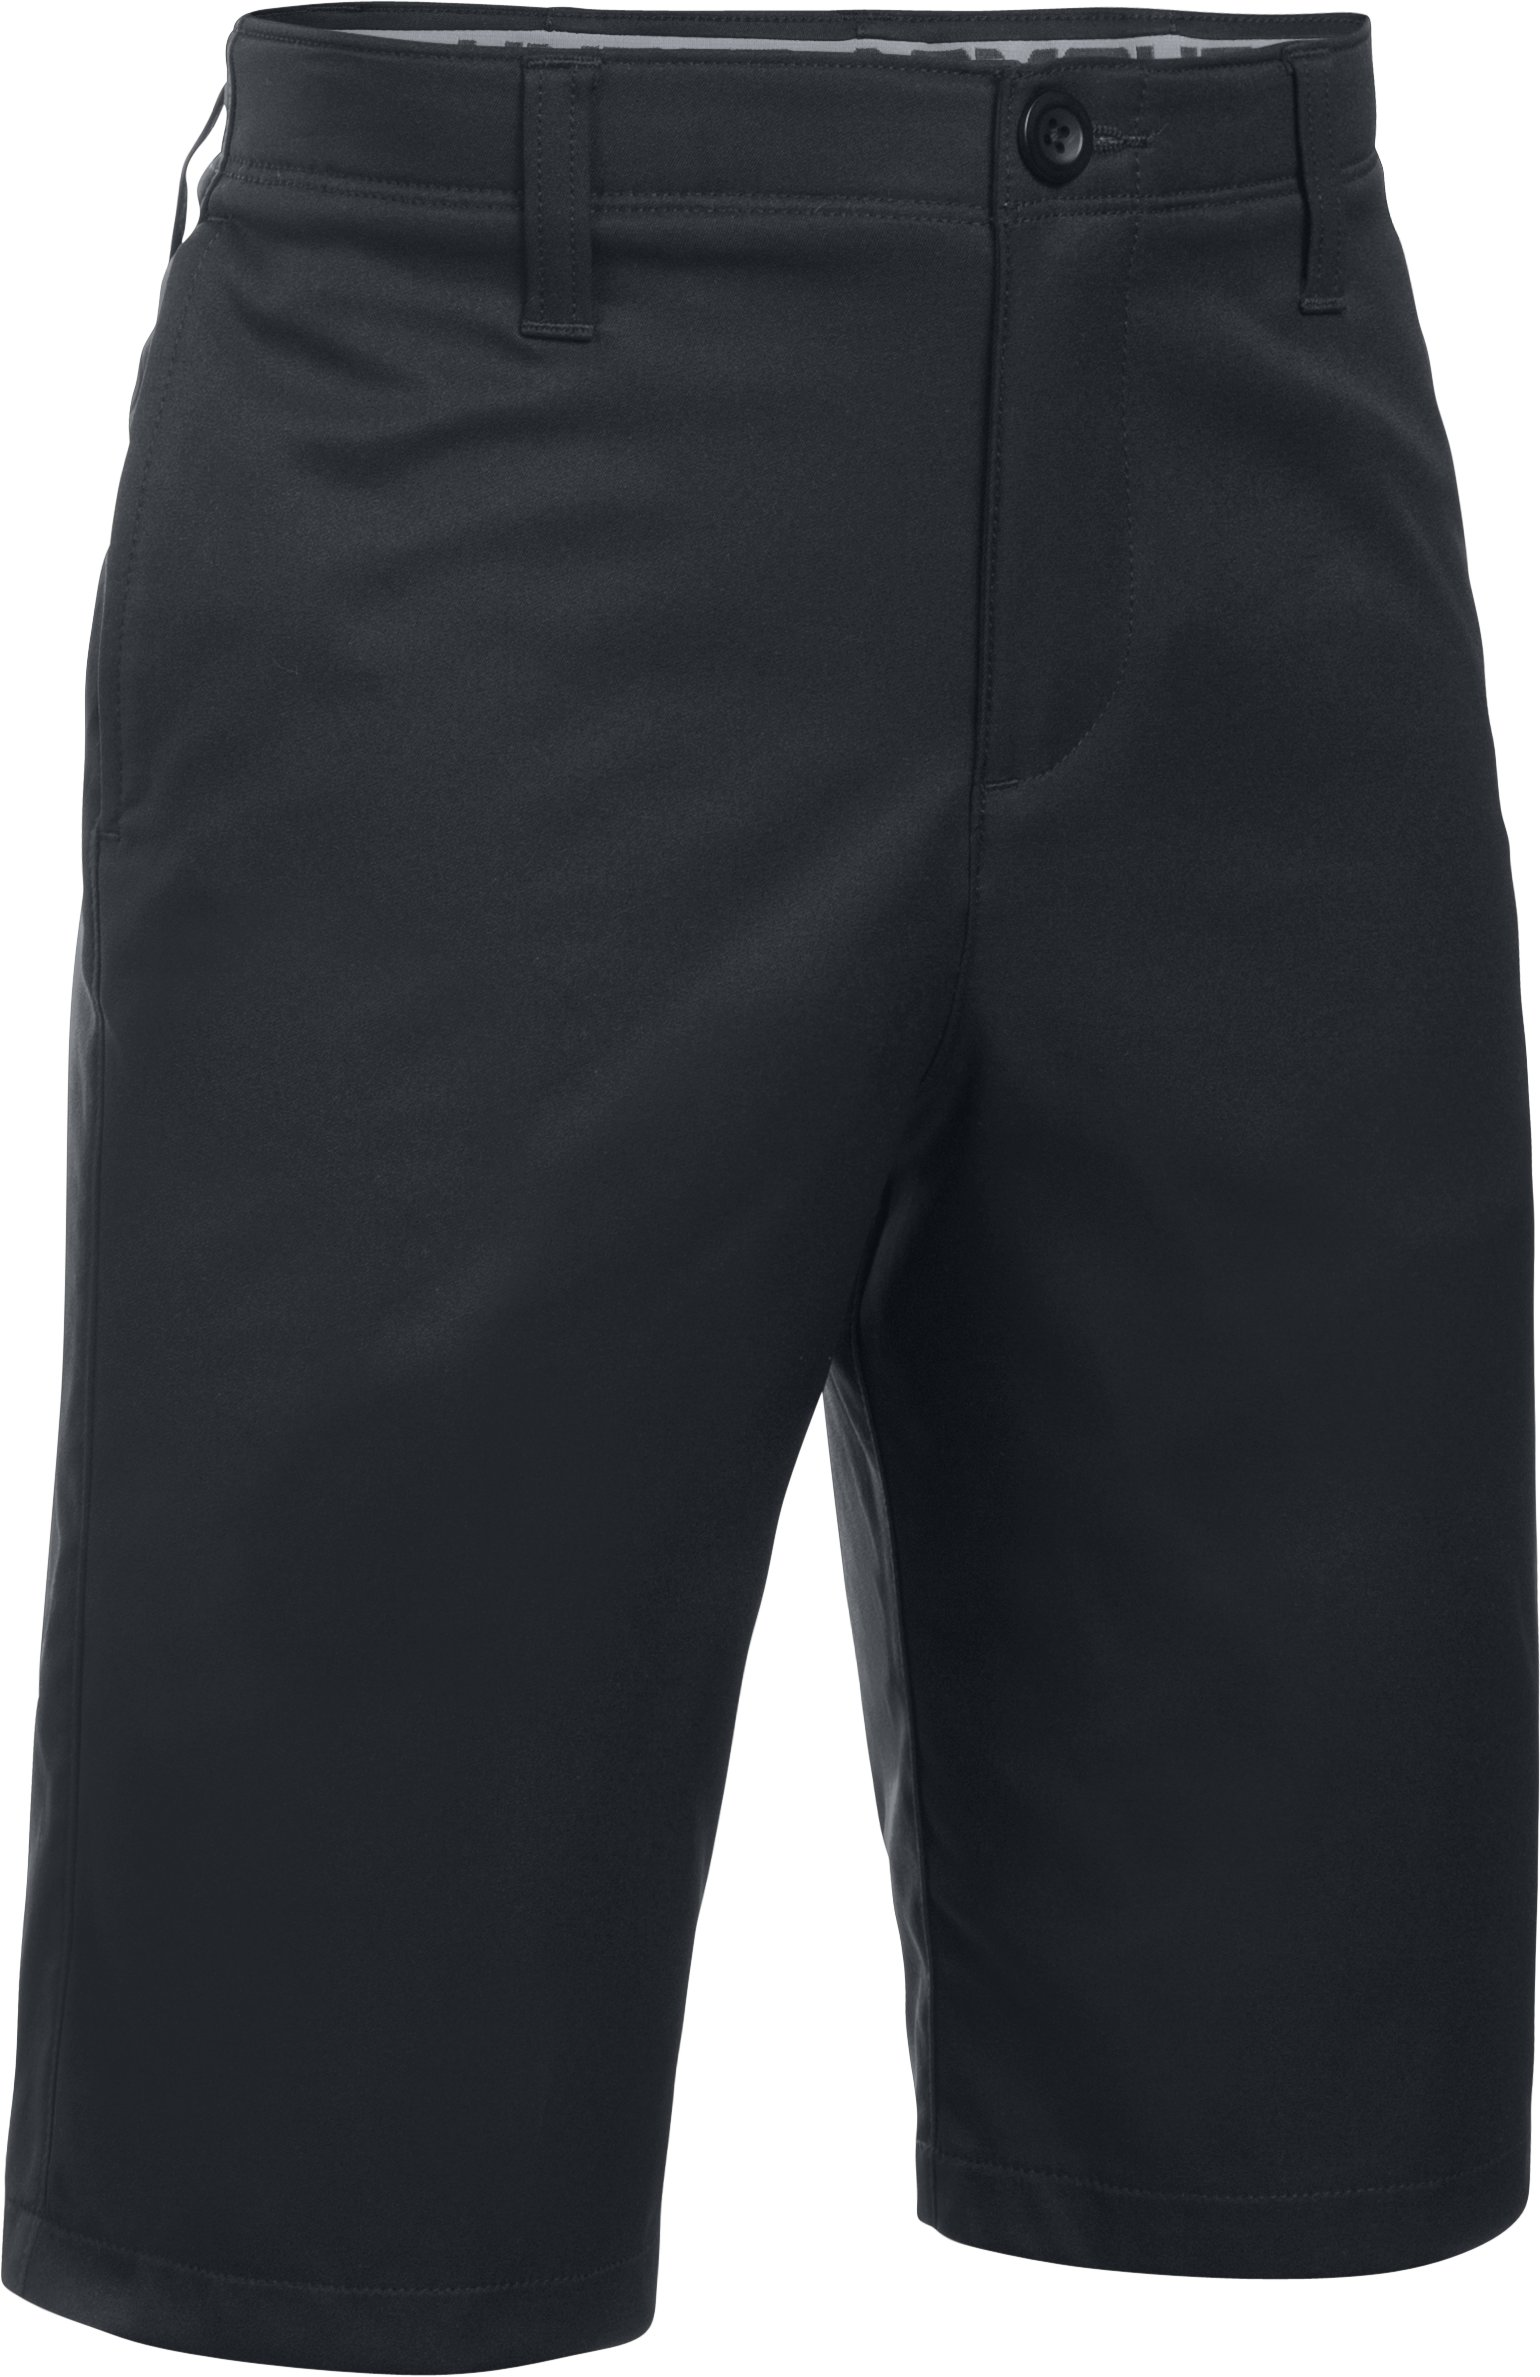 Boys' UA Match Play Shorts, Black